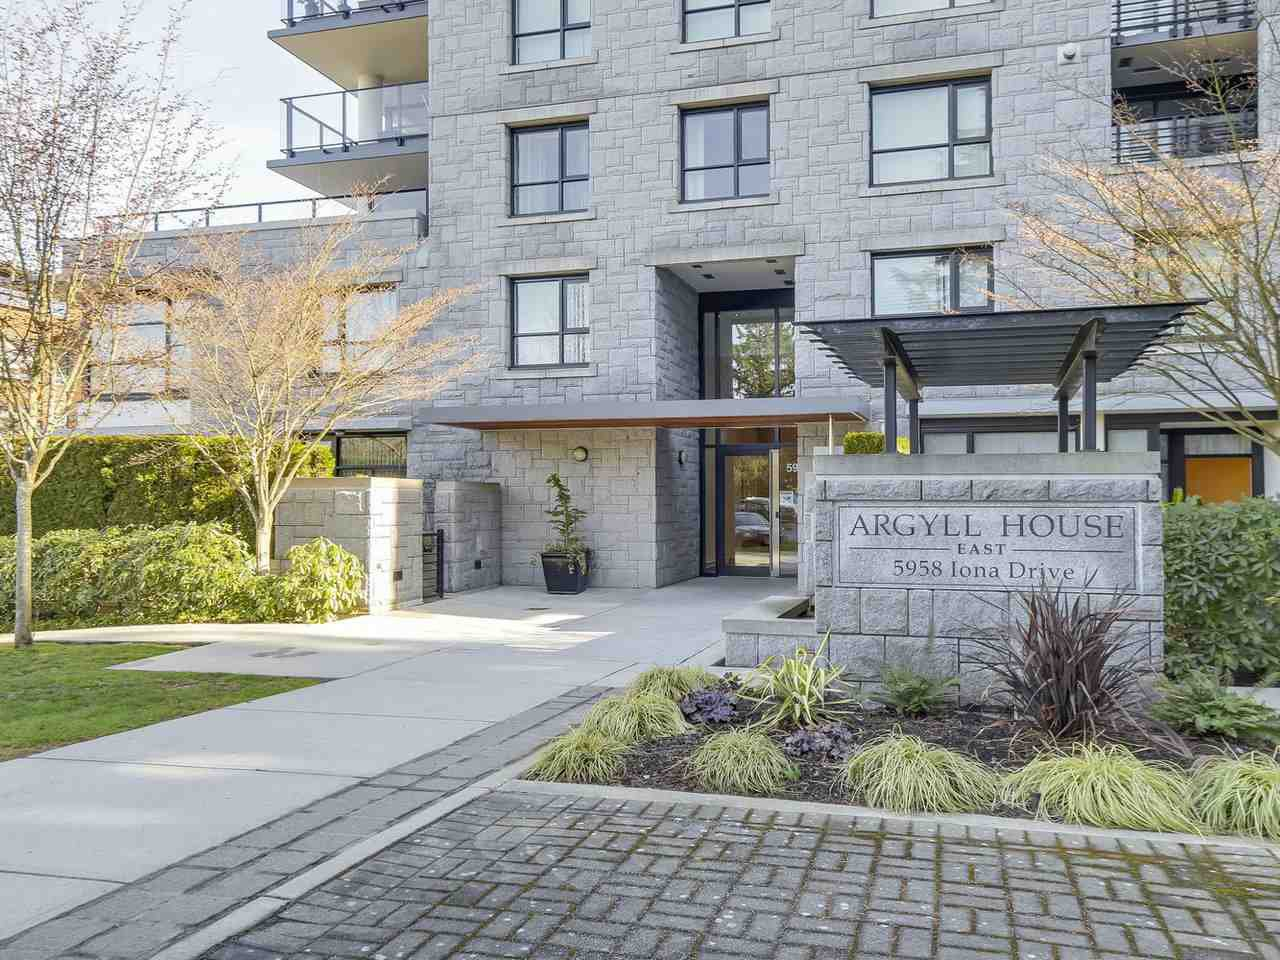 "Main Photo: 301 5958 IONA Drive in Vancouver: University VW Condo for sale in ""ARGYLL HOUSE EAST"" (Vancouver West)  : MLS®# R2247322"